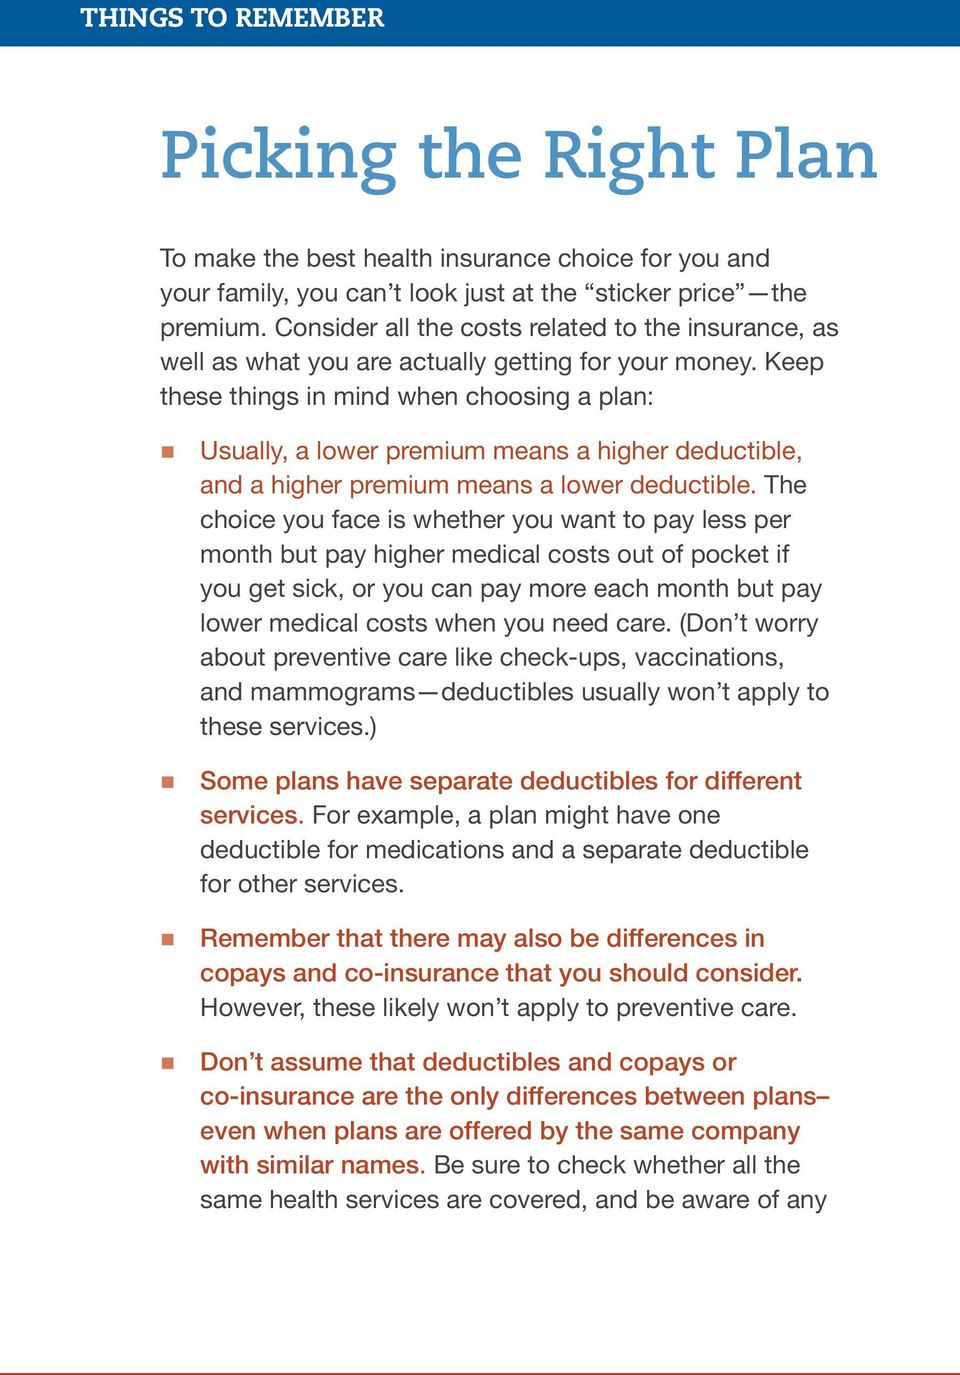 Keep these things in mind when choosing a plan: Usually, a lower premium means a higher deductible, and a higher premium means a lower deductible.